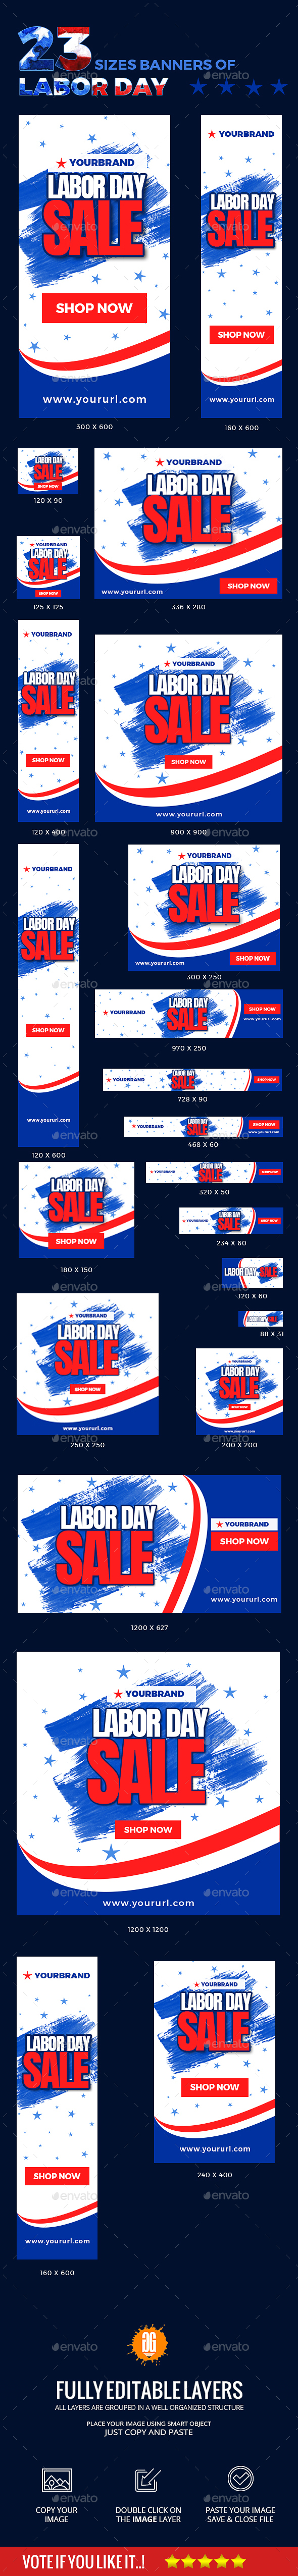 23 Labor Day Banners - Banners & Ads Web Elements